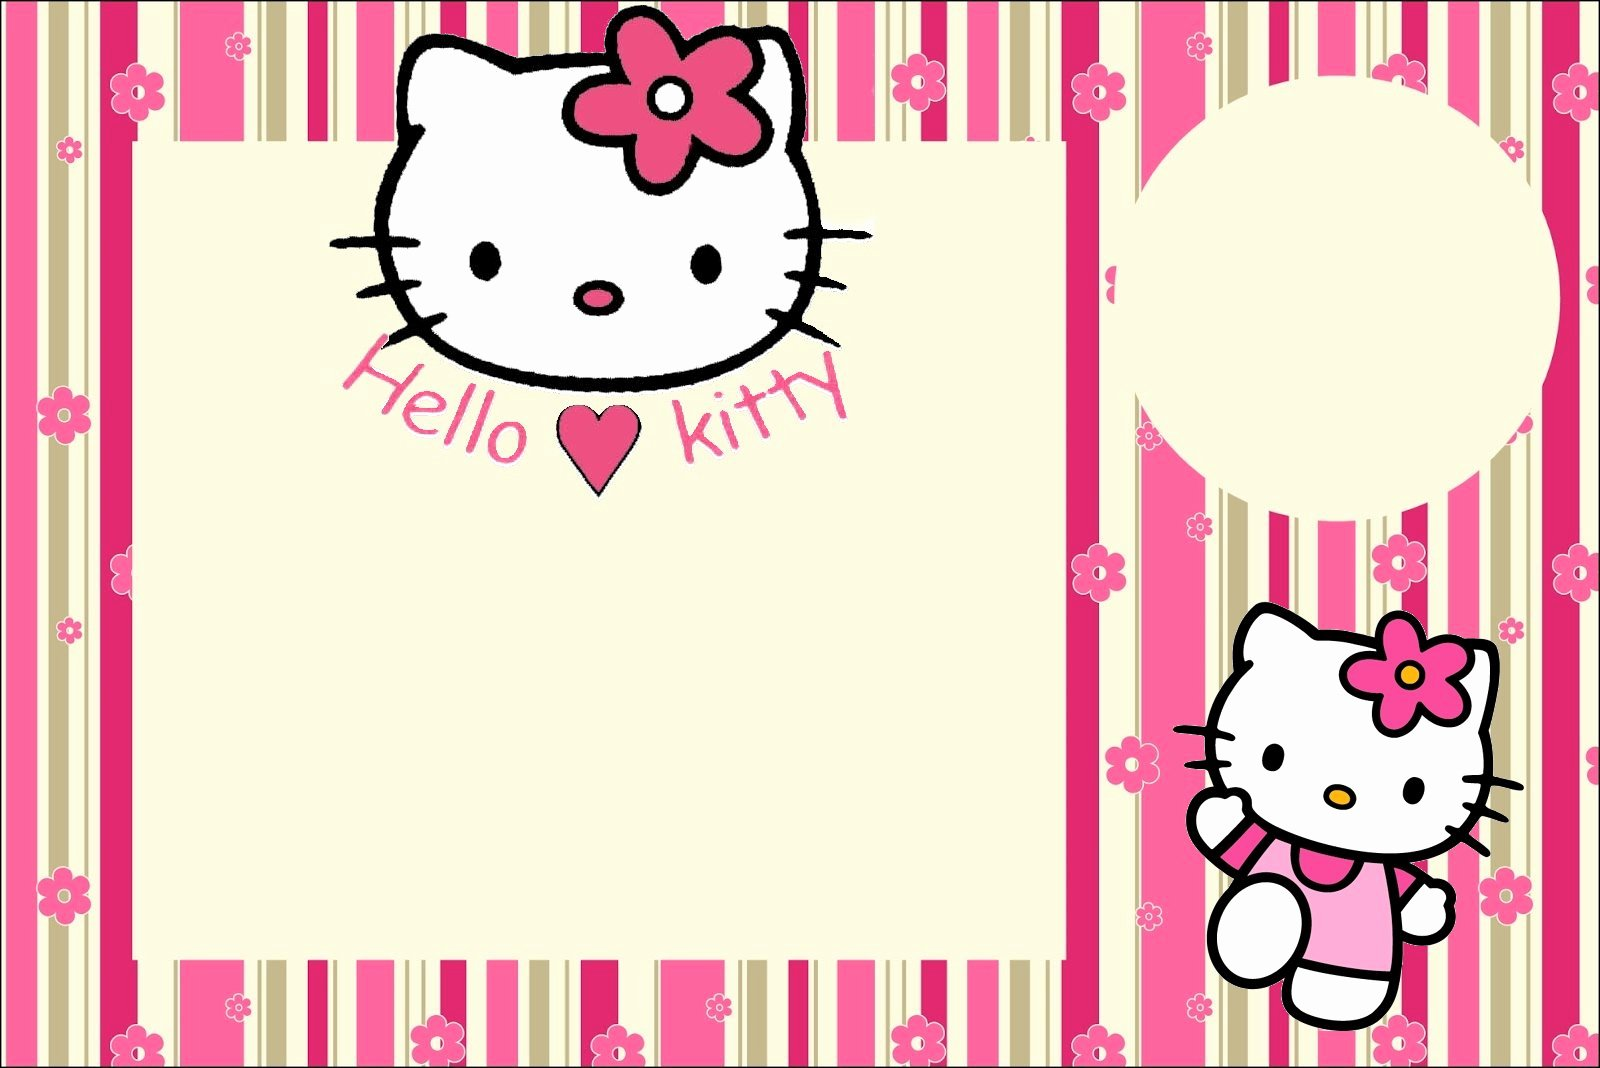 Hello Kitty Birthday Invitations Luxury Hello Kitty with Flowers Free Printable Invitations Oh